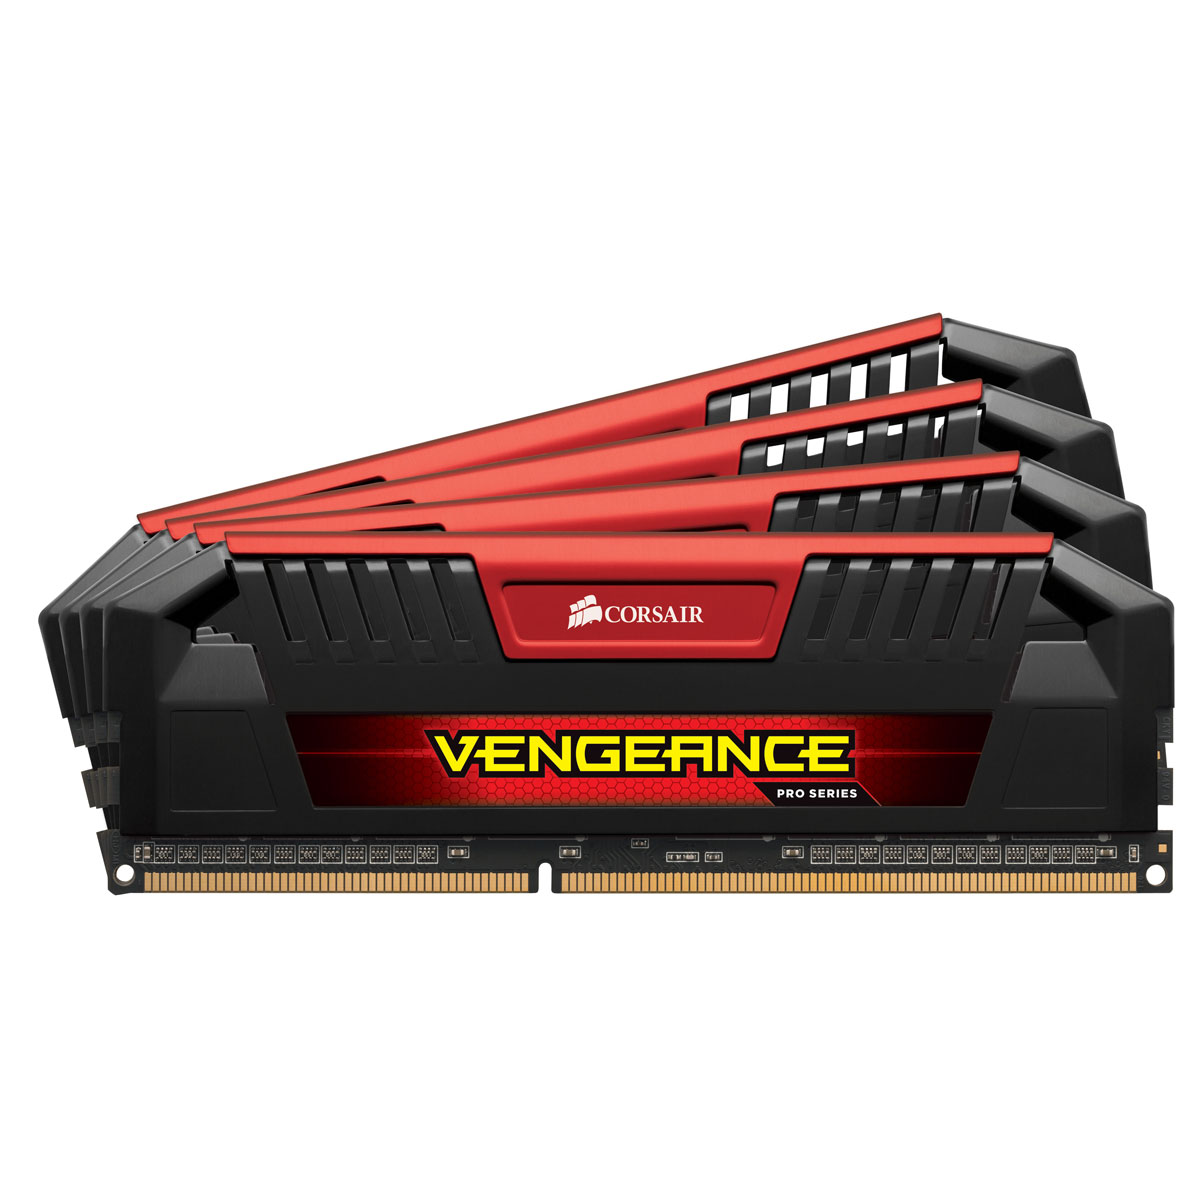 Mémoire PC Corsair Vengeance Pro Series 16 Go (4 x 4 Go) DDR3 2666 MHz CL12 Red Kit Quad Channel RAM DDR3 PC3-21300 - CMY16GX3M4A2666C12R (garantie à vie par Corsair)